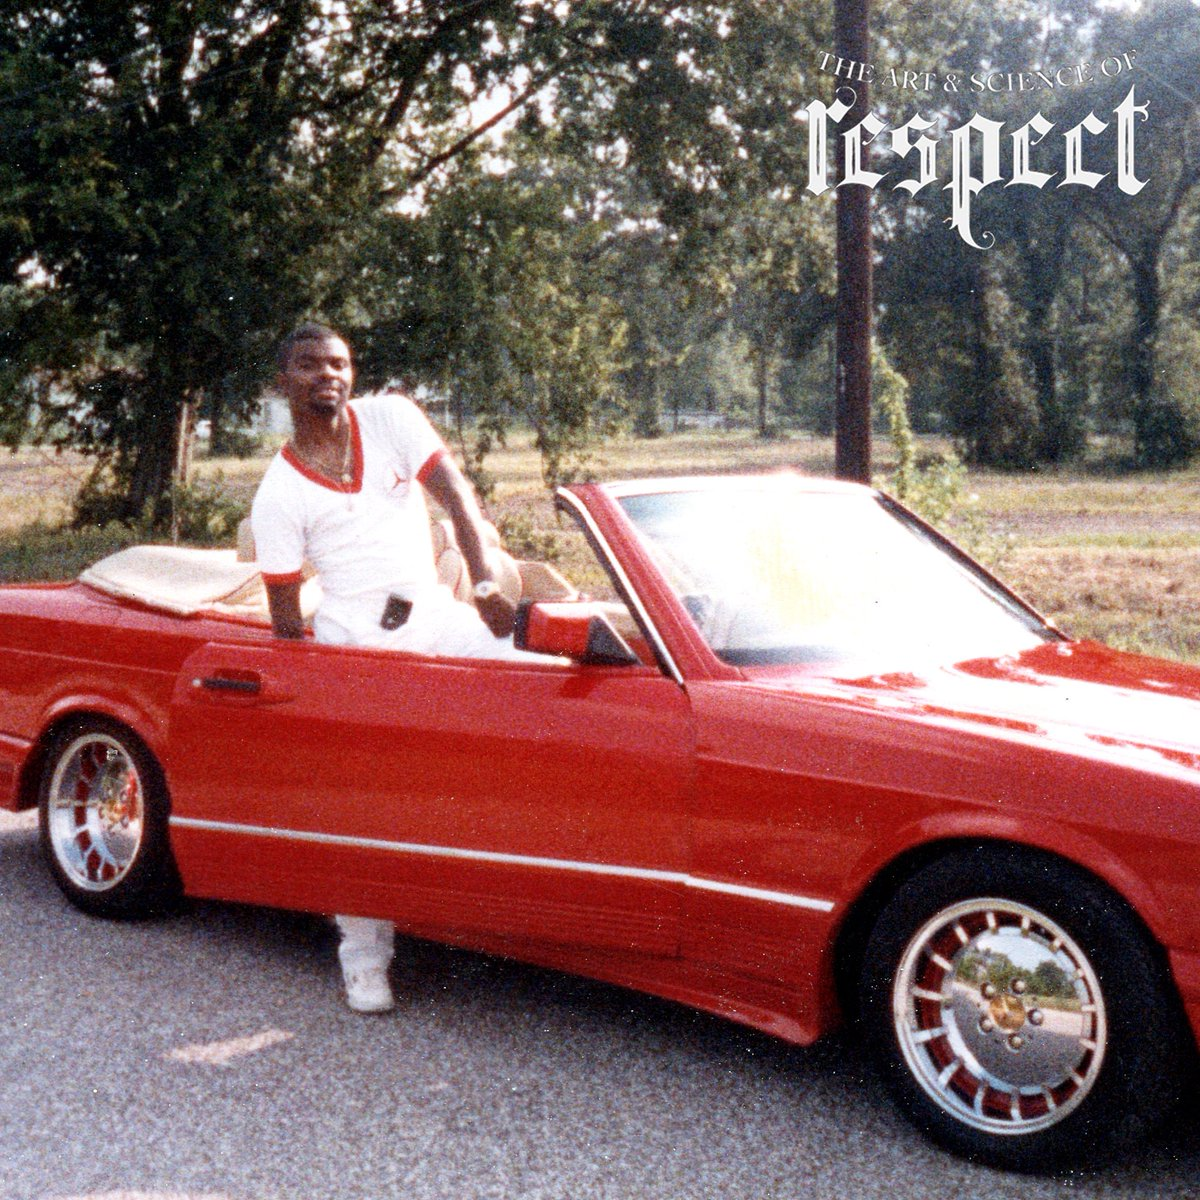 A red Mercedes Benz 500 SEC was my second drop-top convertible.. I bought it from Terry Carter in the late 80s. Suge Knight is on trial now accused of running Terry over & killing him on the set of Straight Outta Compton in 2015